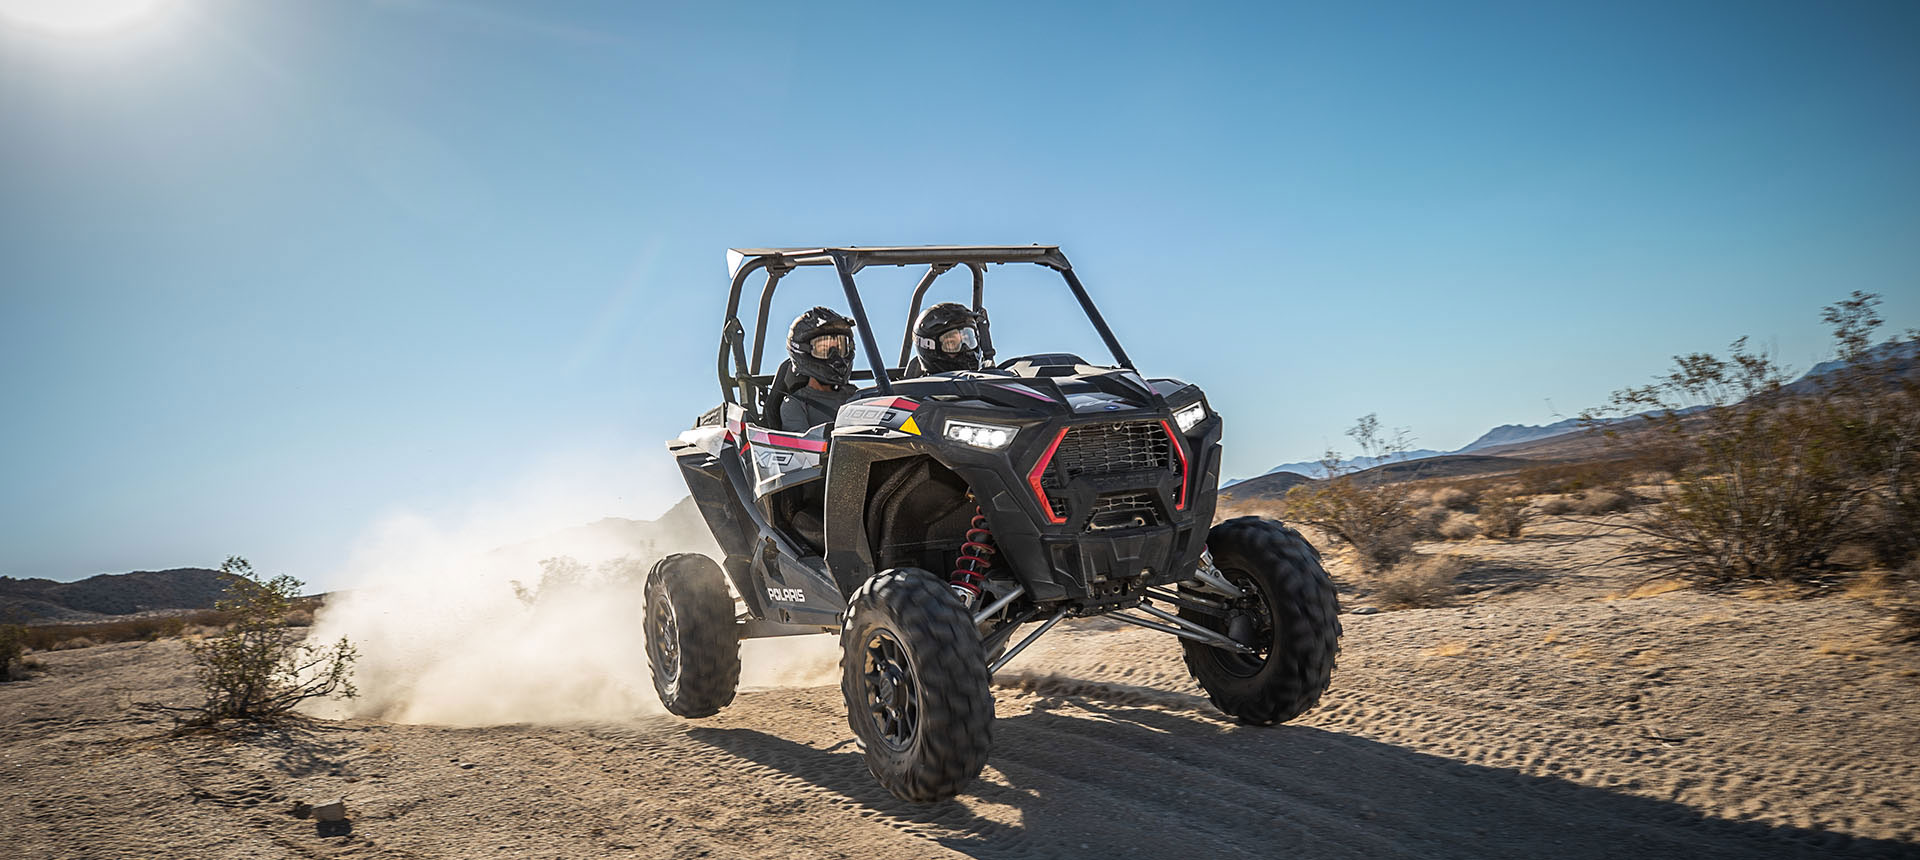 2019 Polaris RZR XP 1000 in Corona, California - Photo 9